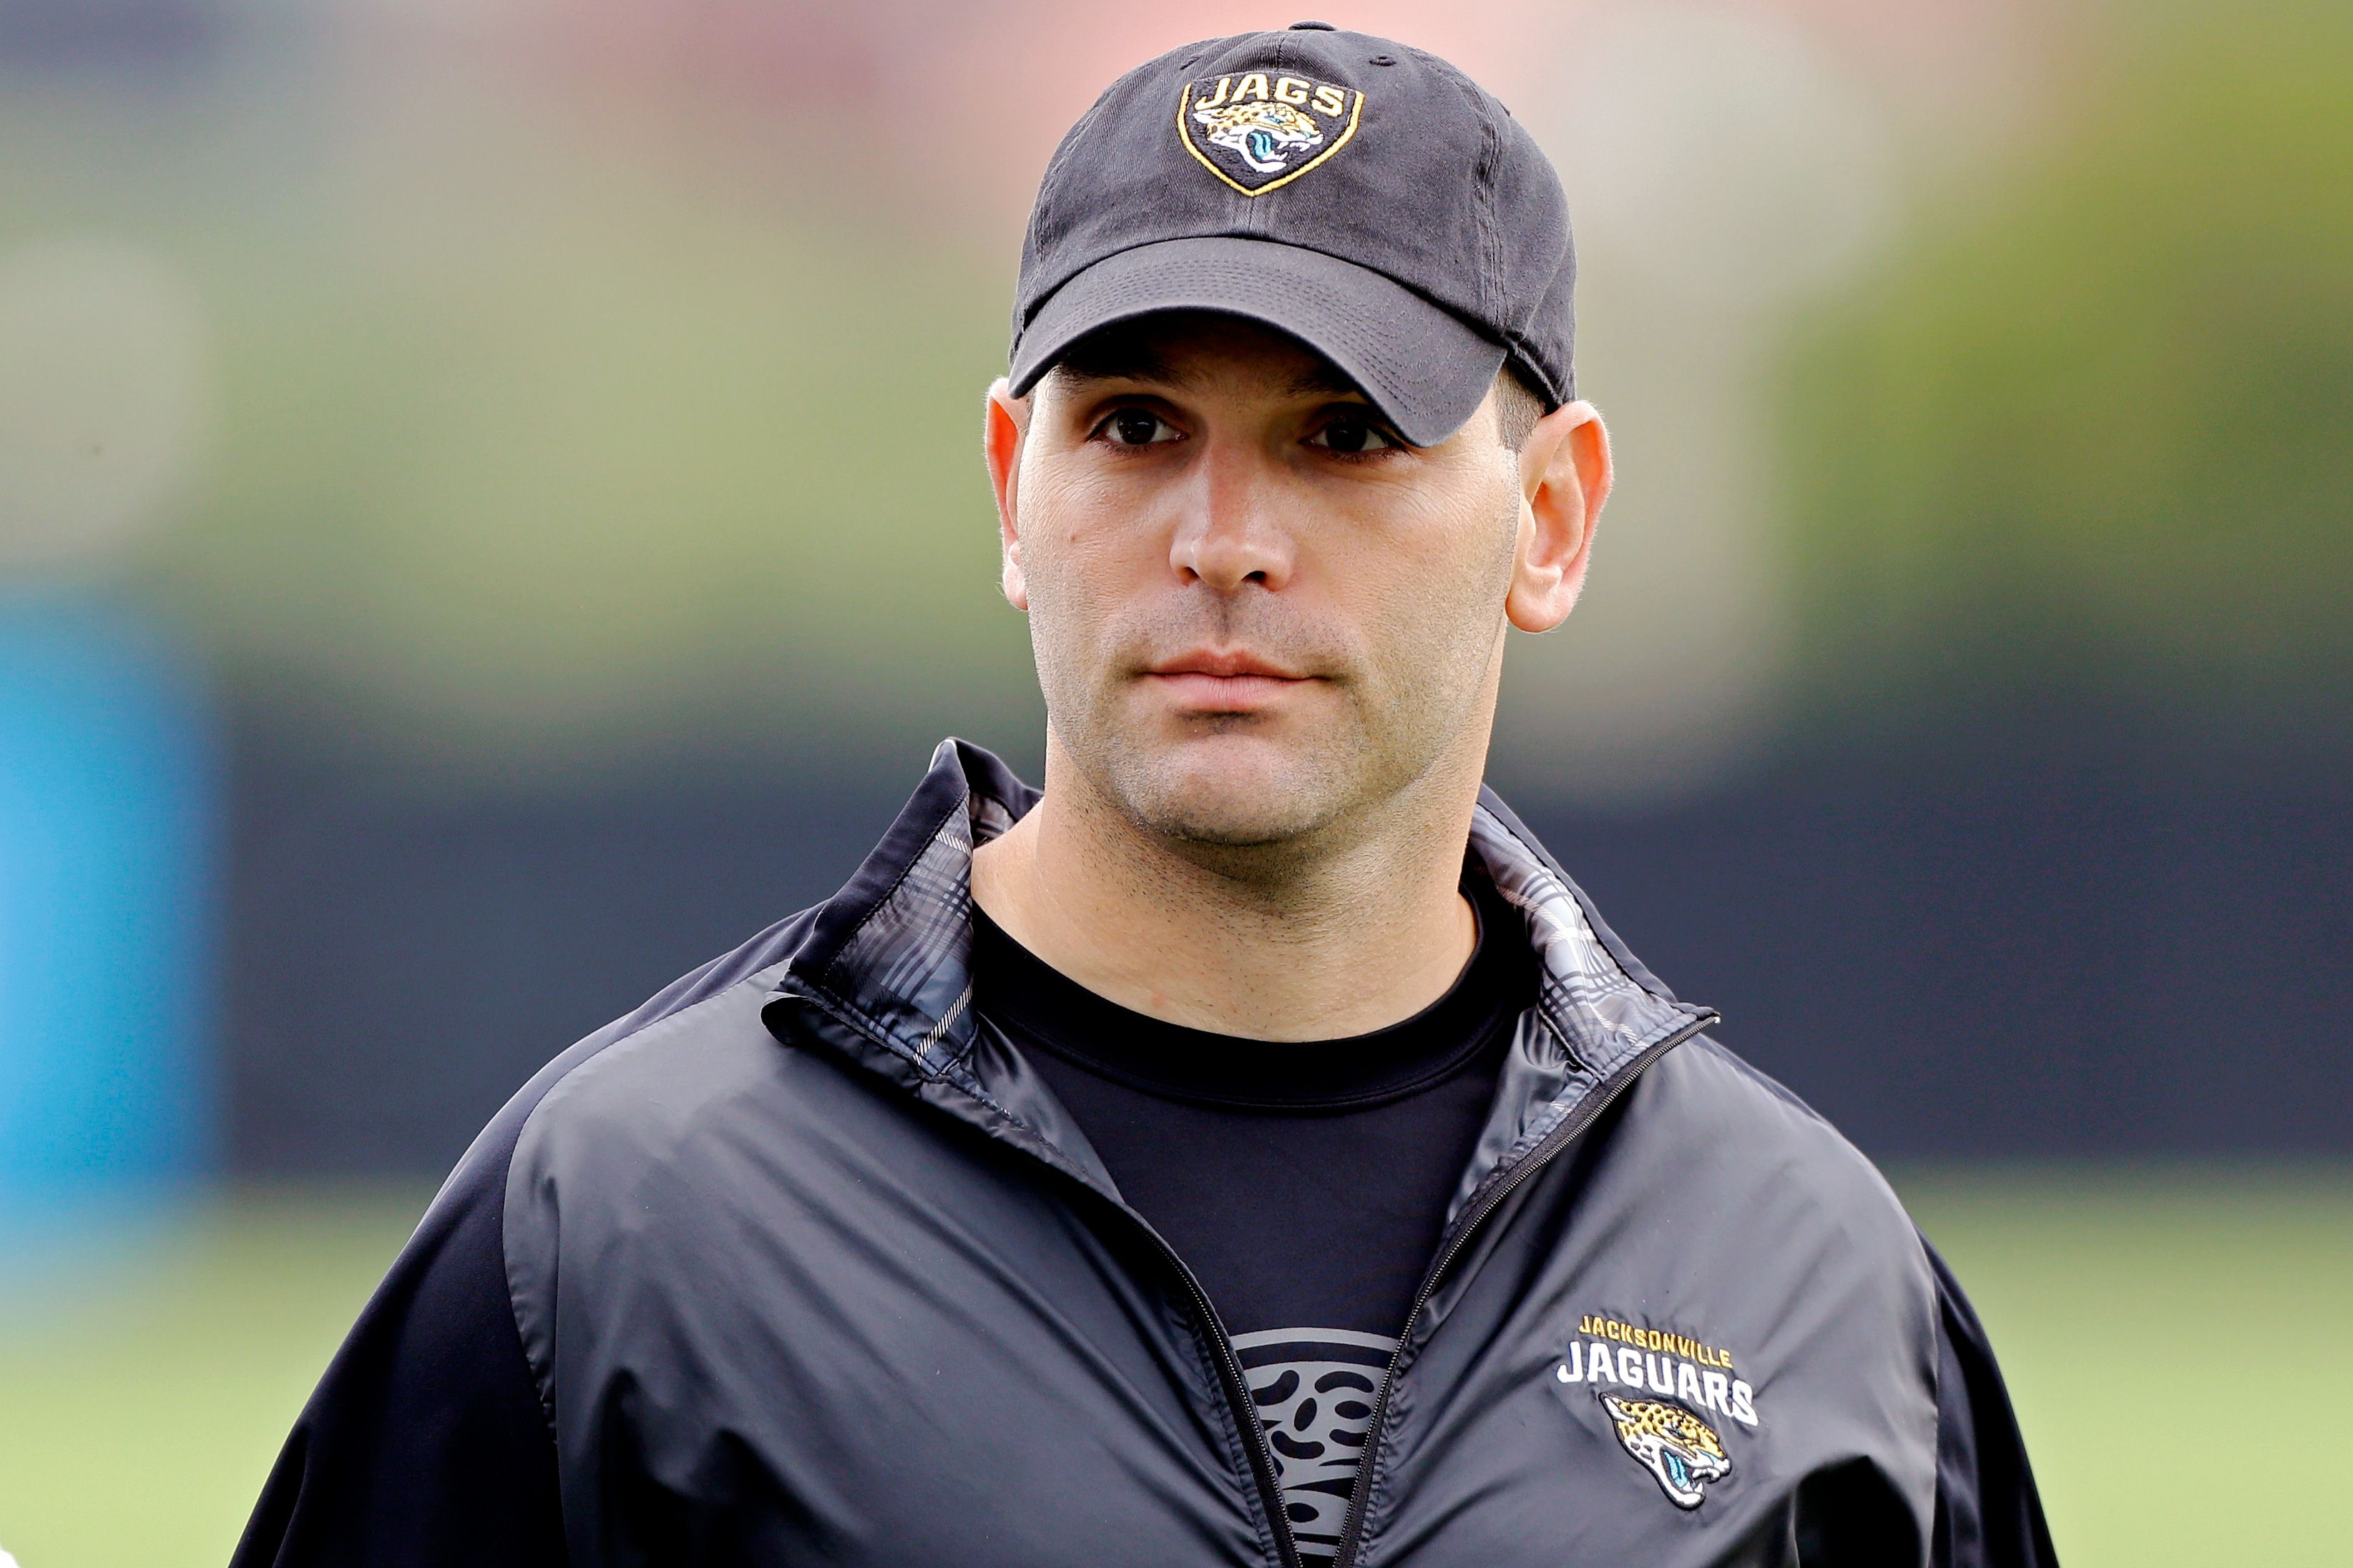 Dave Caldwell Net Worth